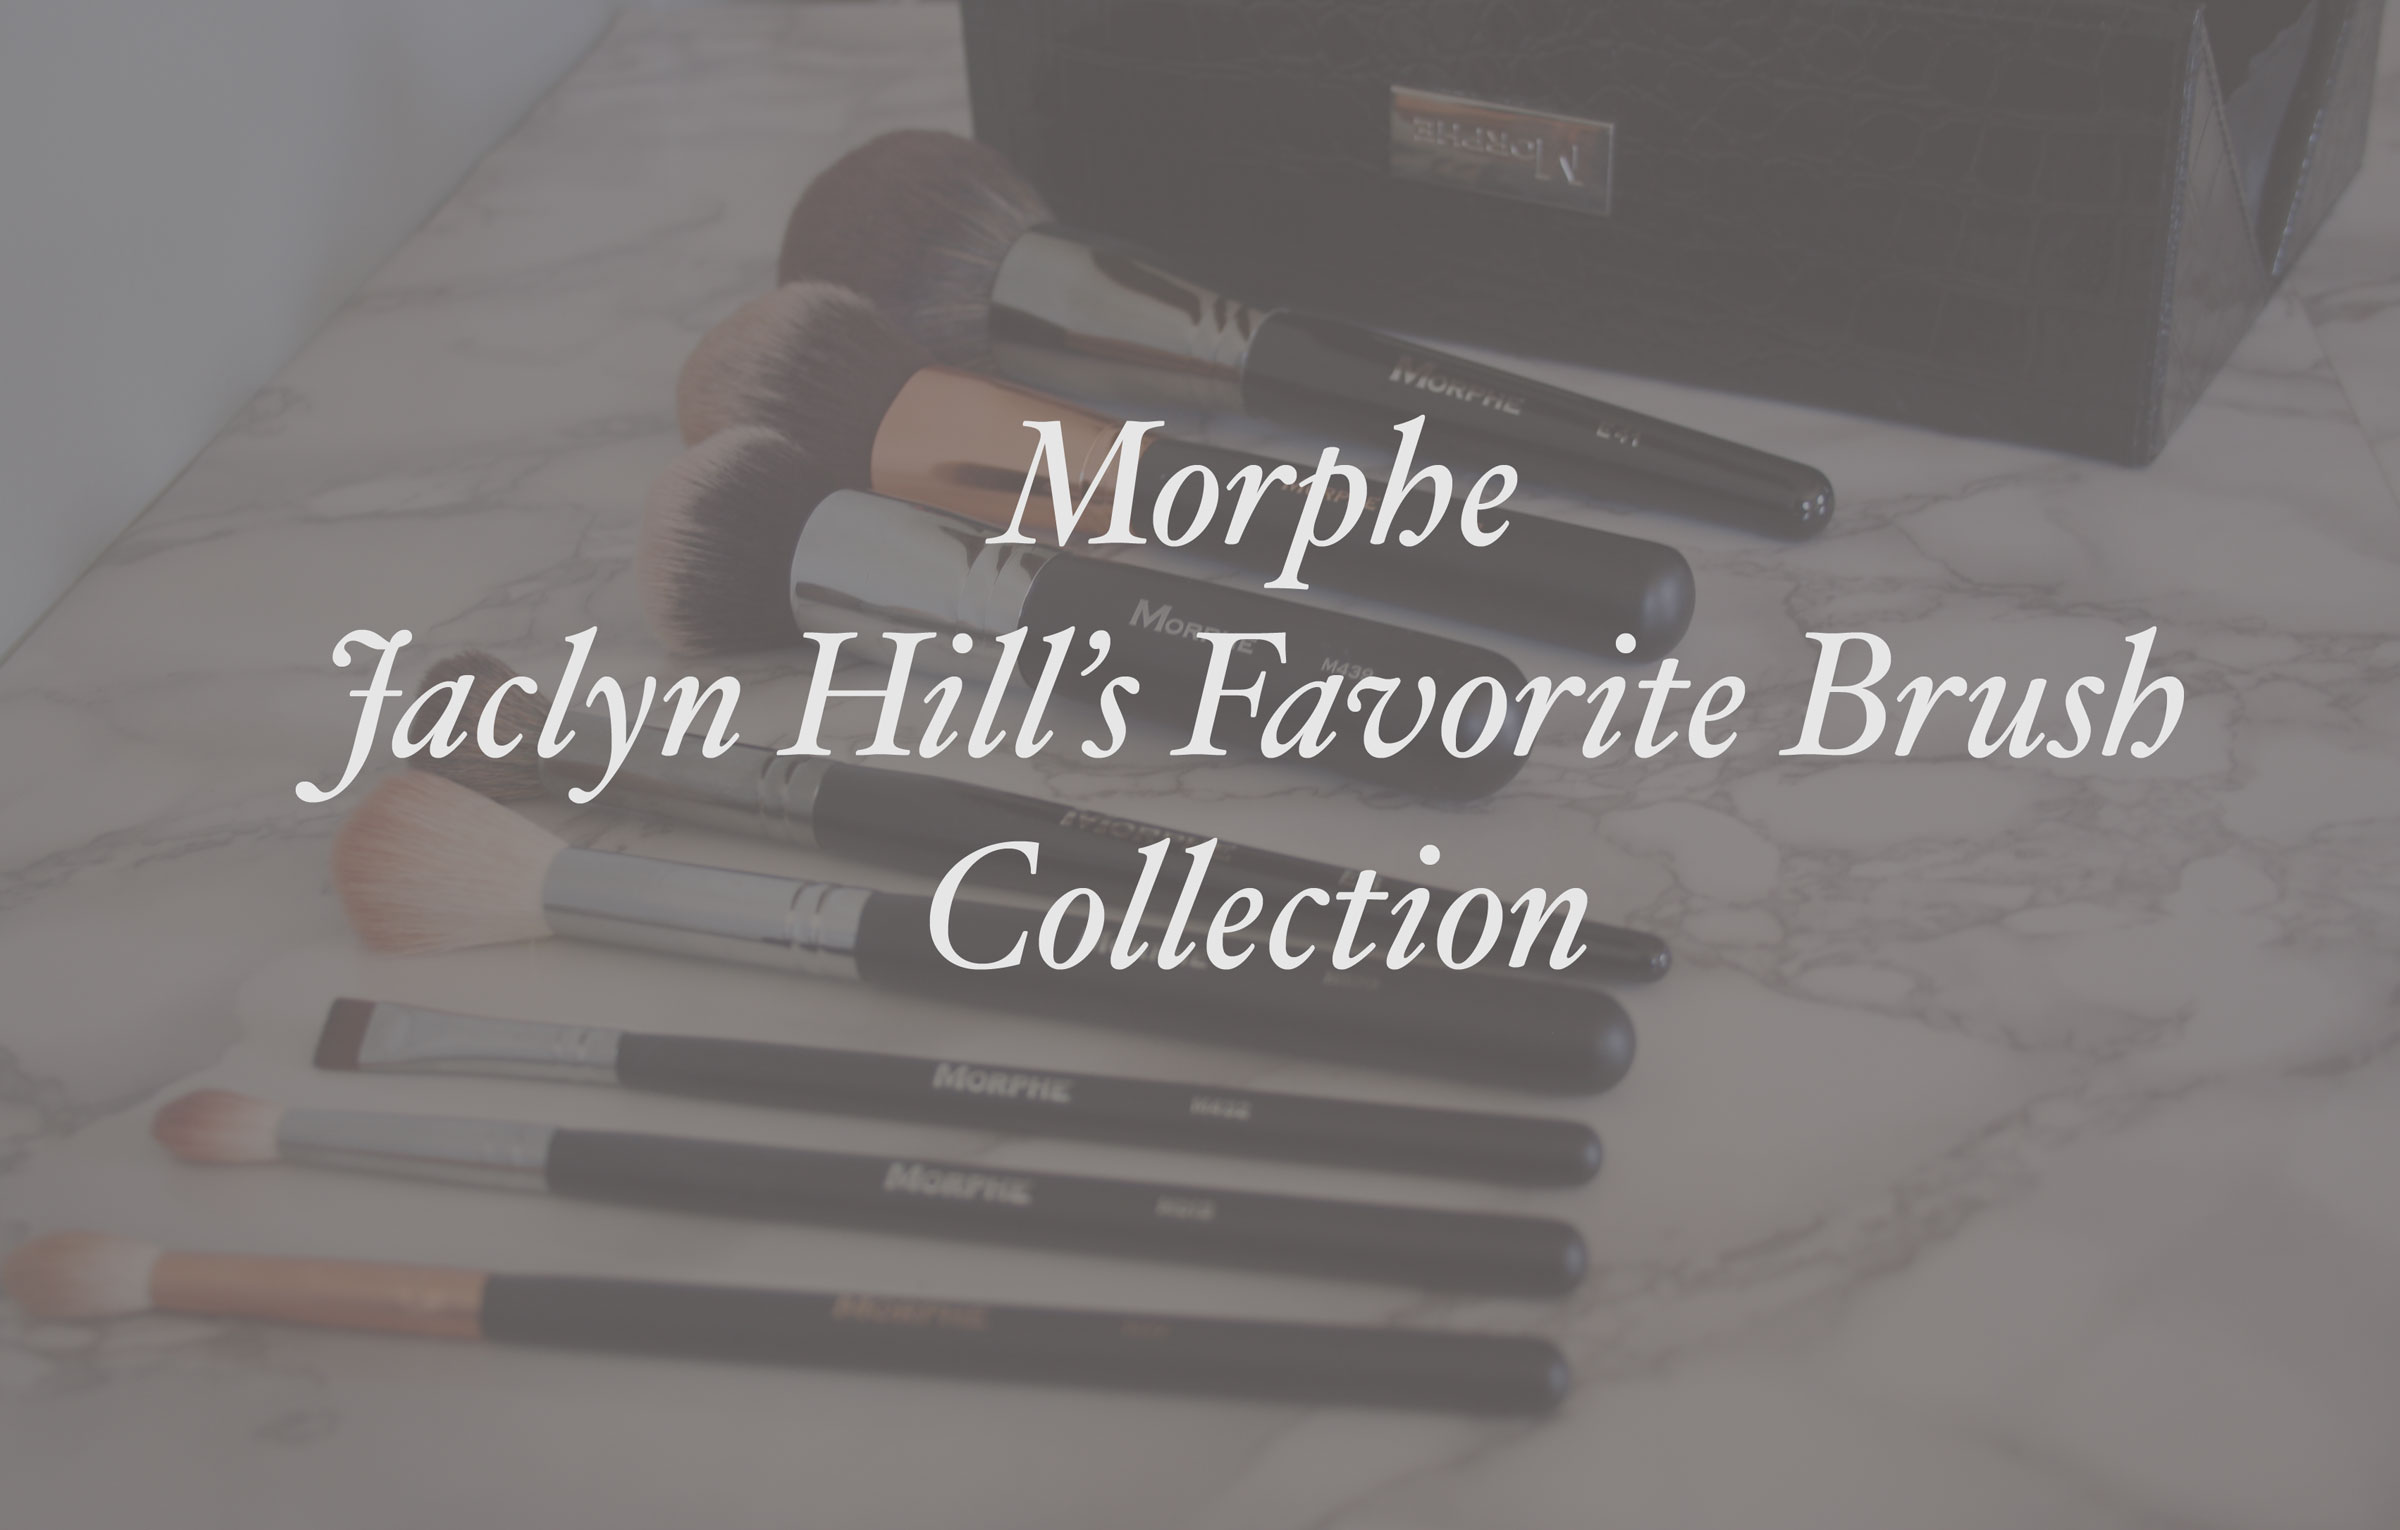 Jaclyn Hill Morphe Brush Collection